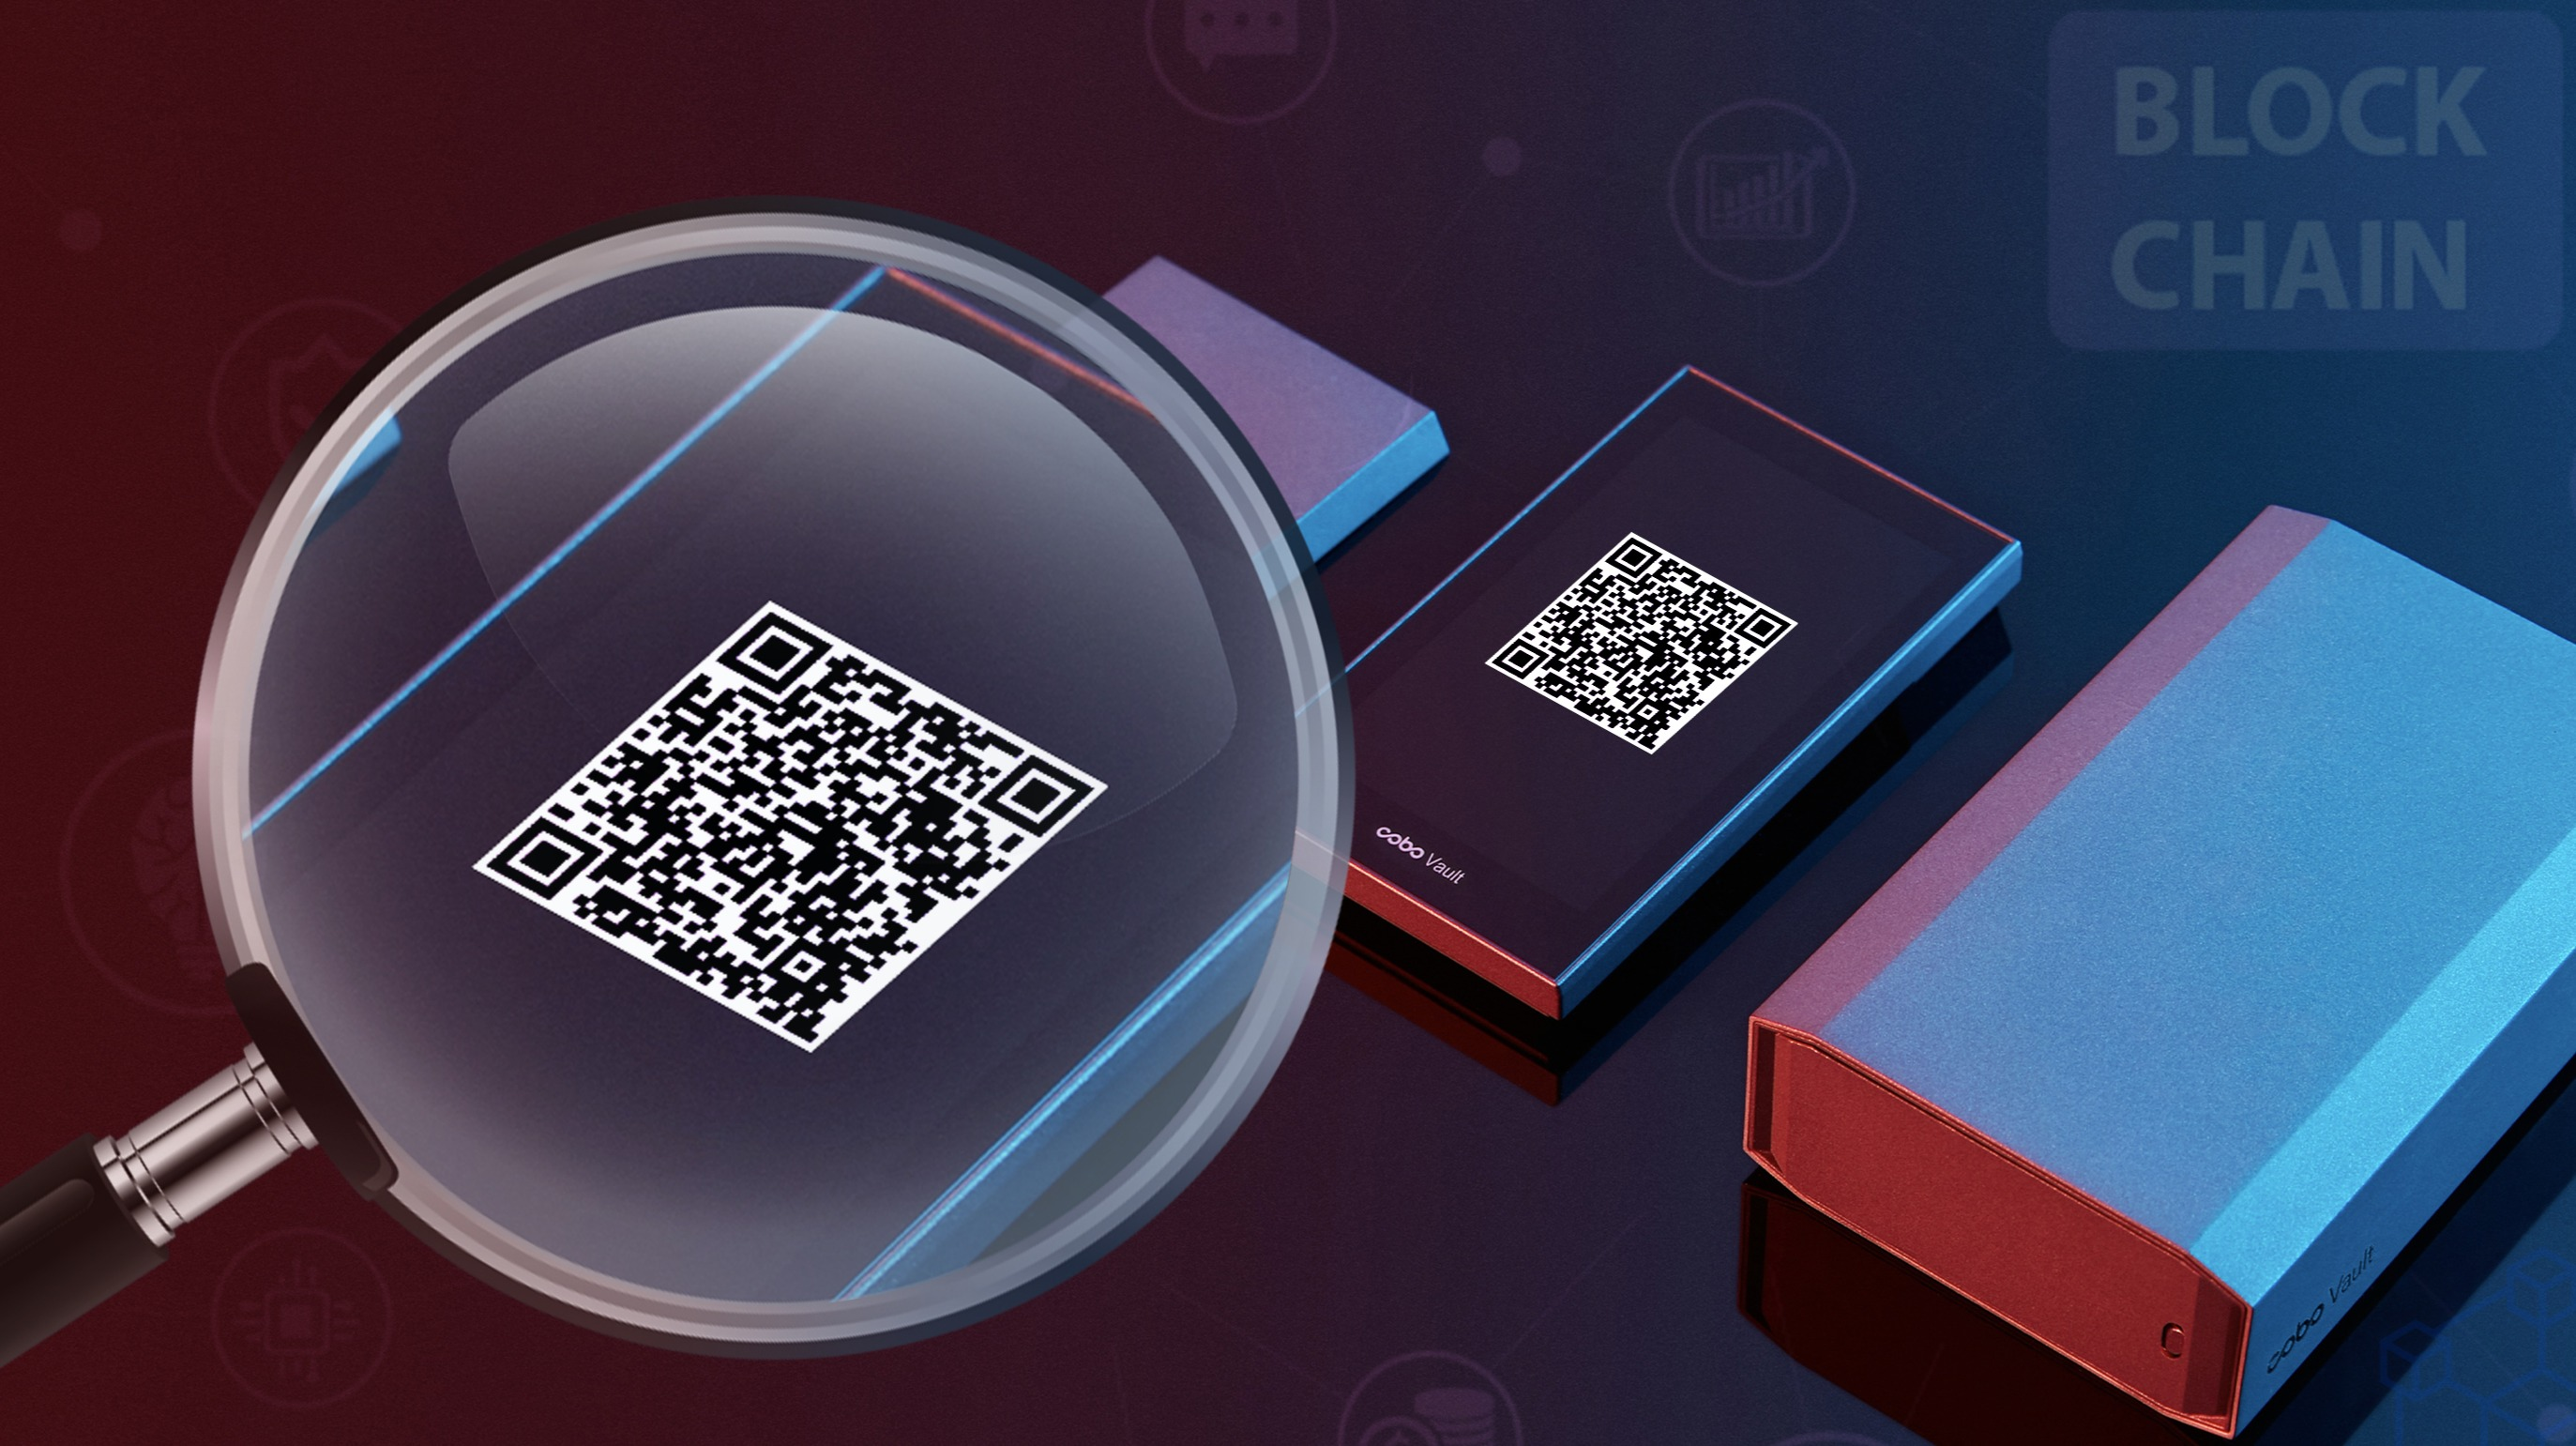 Verifying-the-security-of-QR-code-transactions